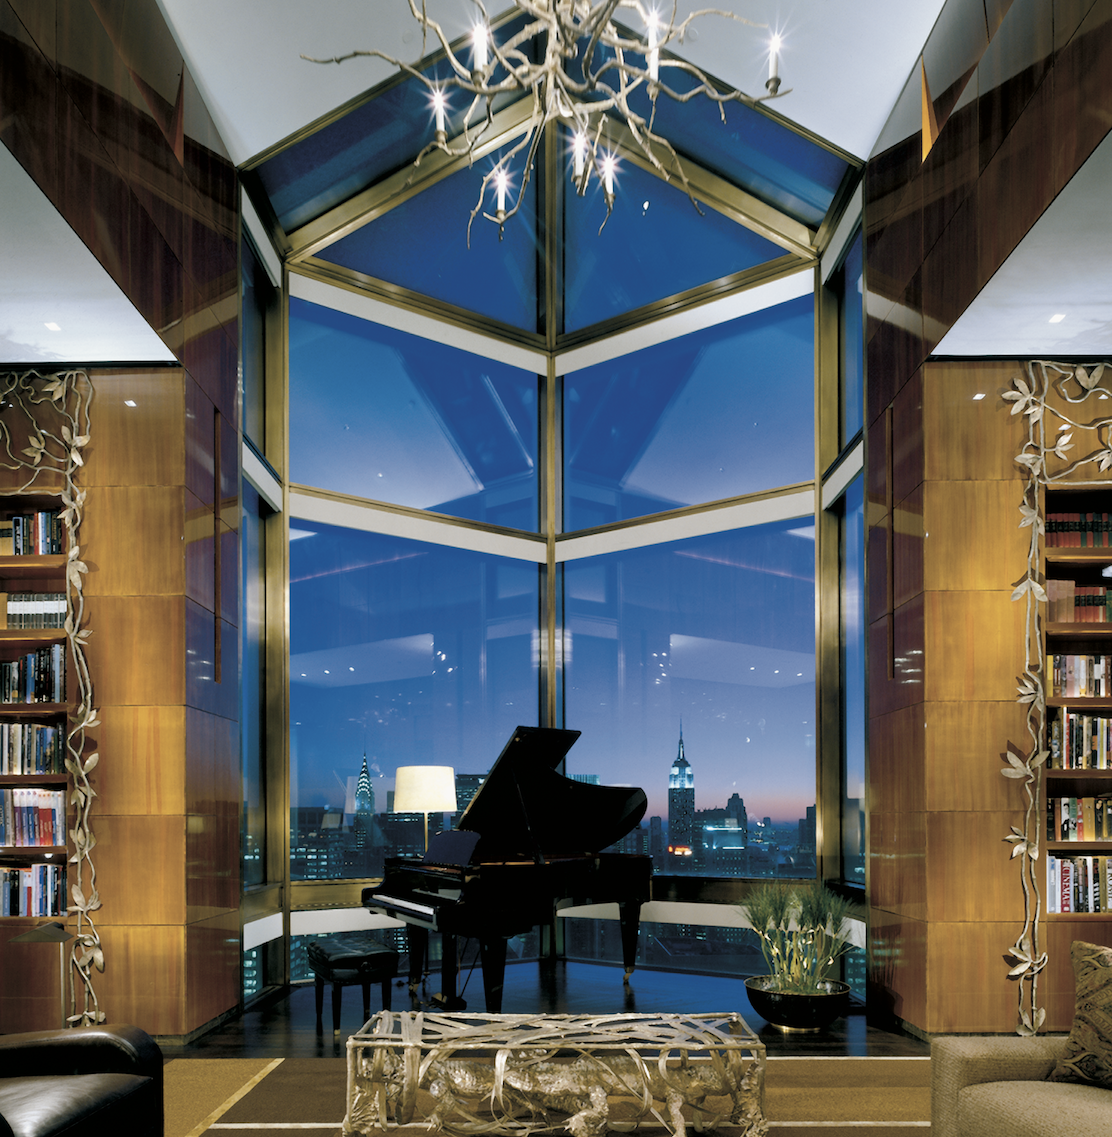 TY Warner Penthouse suite